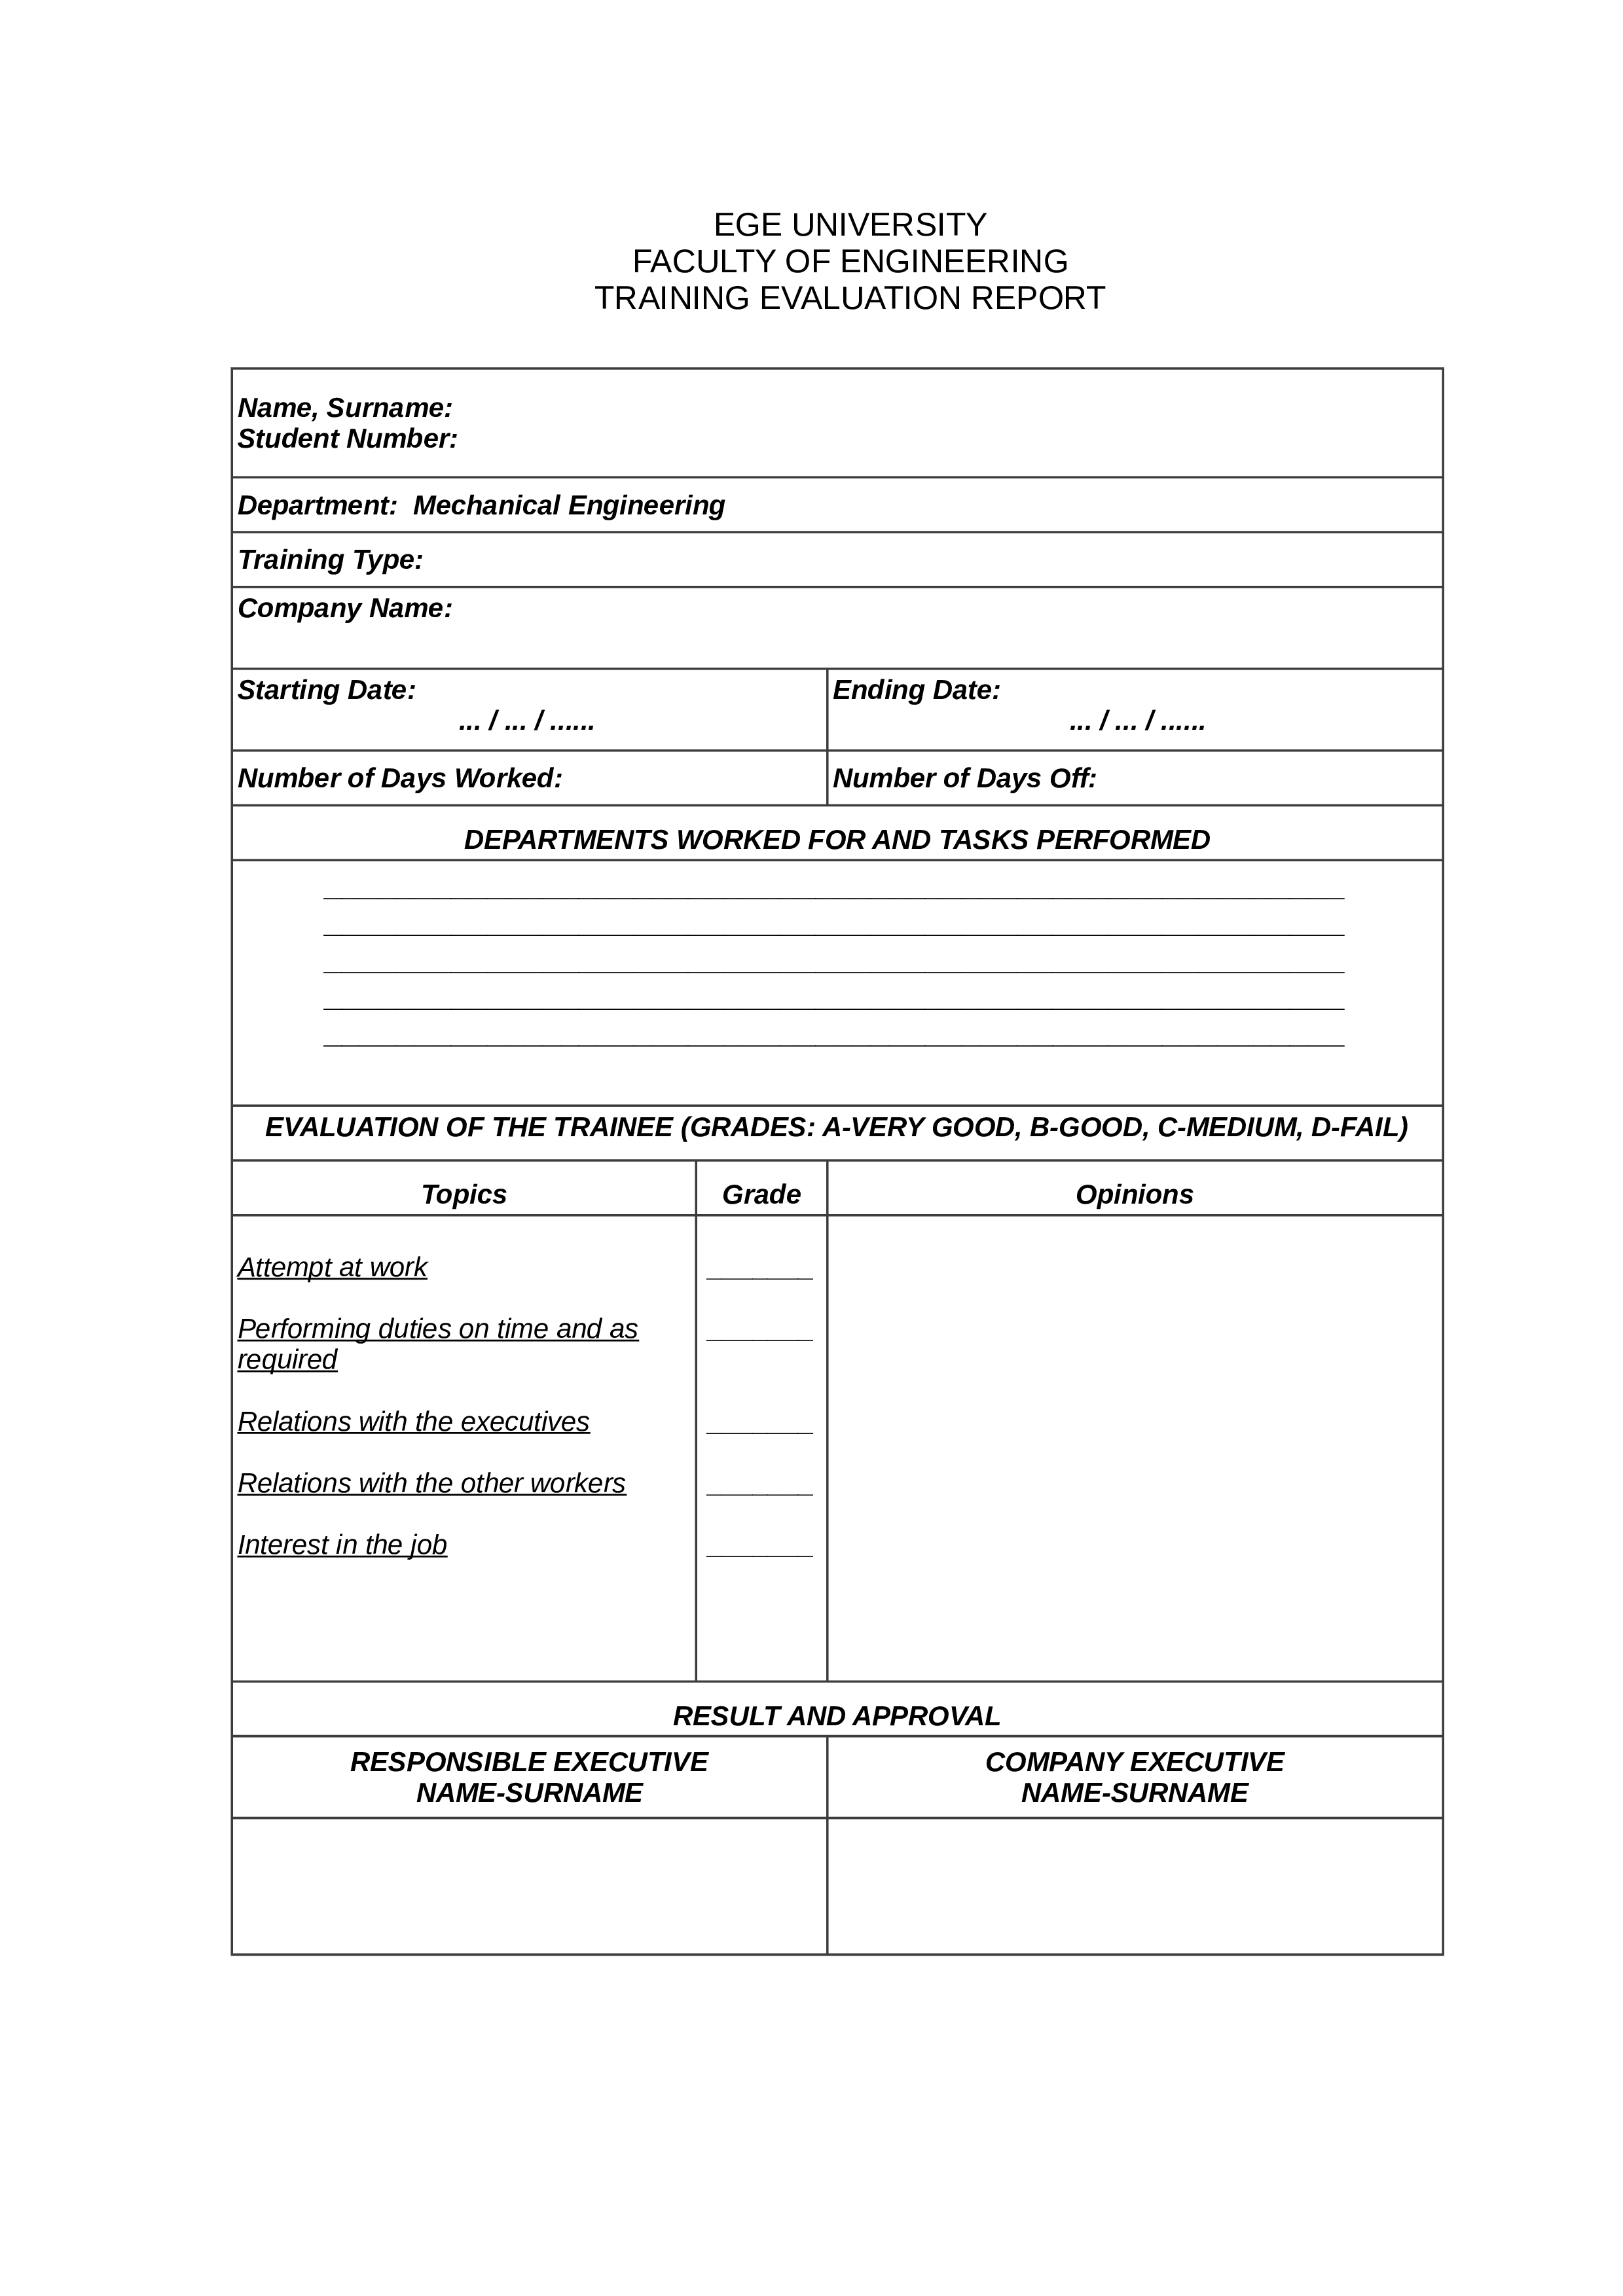 free training evaluation form sample templates at